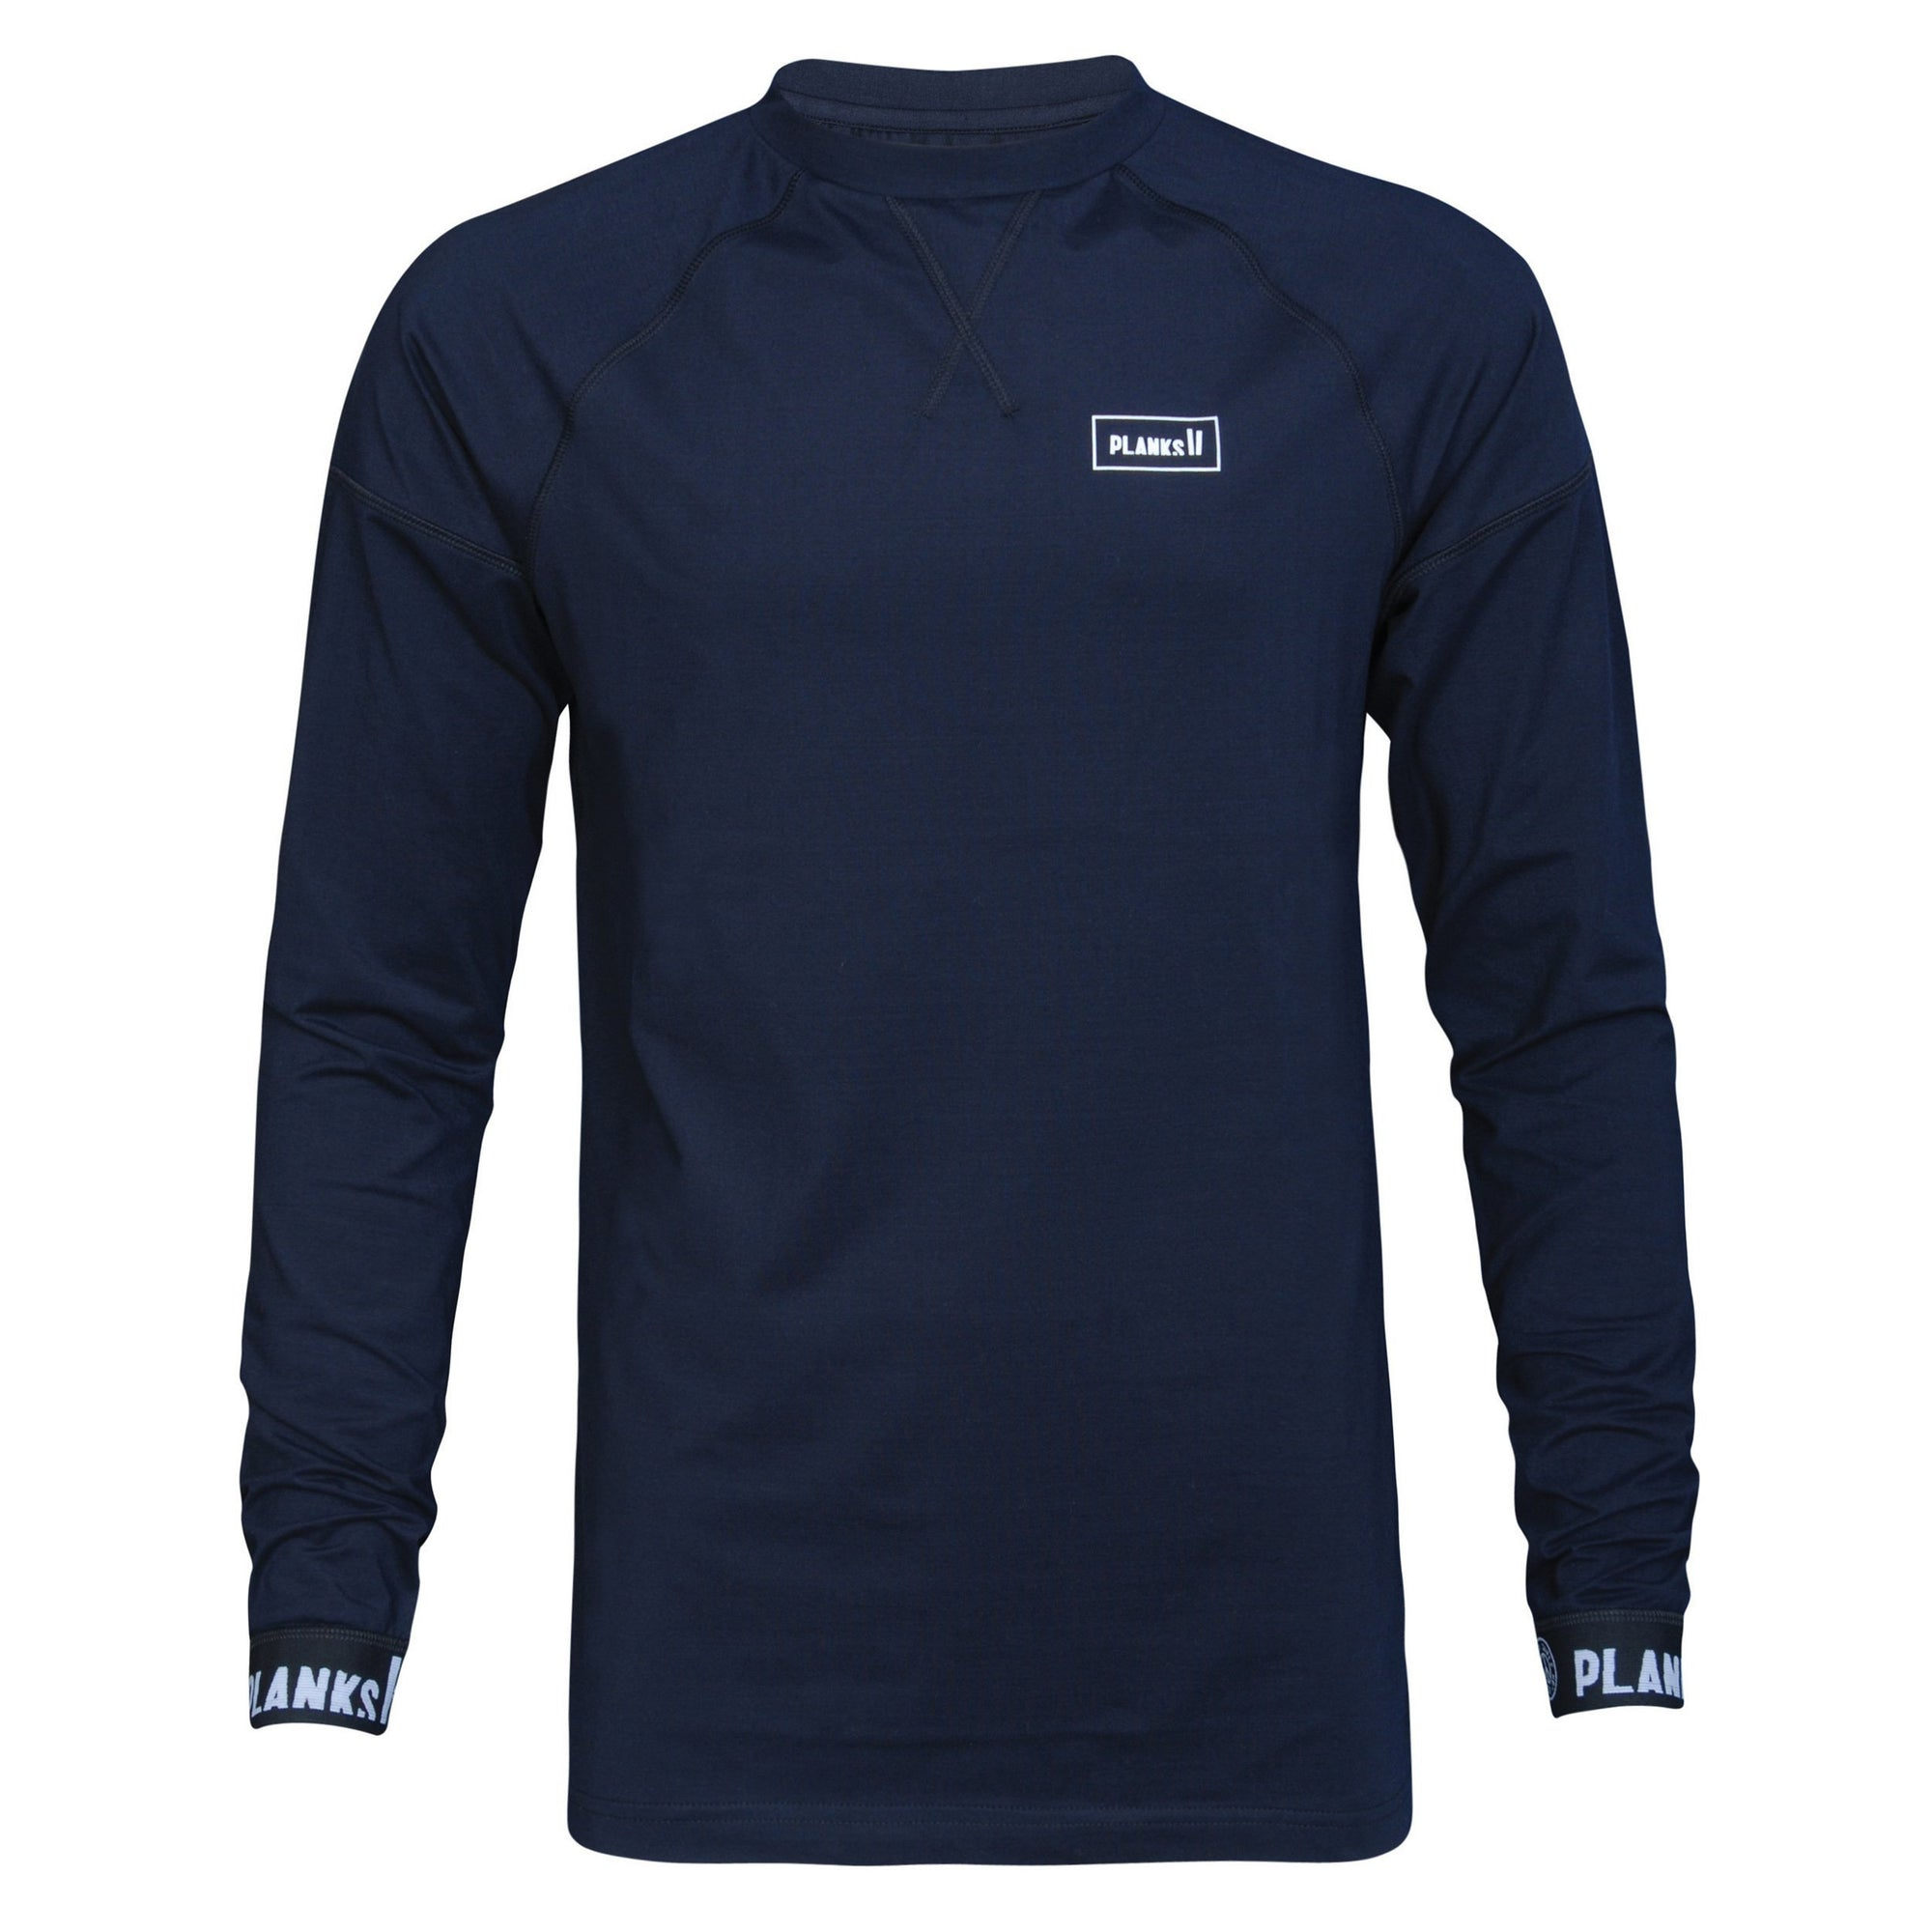 26dff3114 Men's Fall-Line Base Layer Top